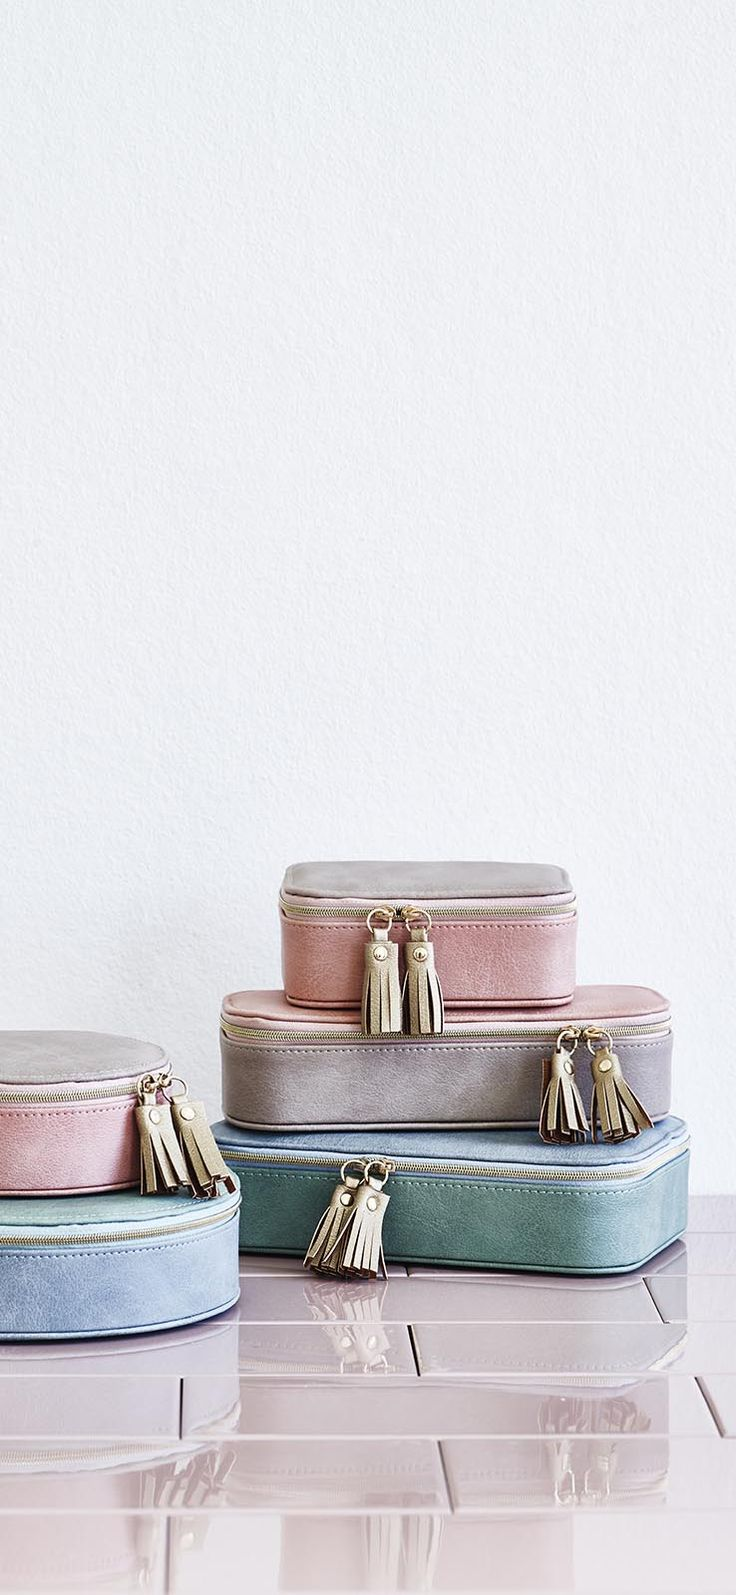 Be get-away ready with the Nellie Travel Small Jewellery Box.